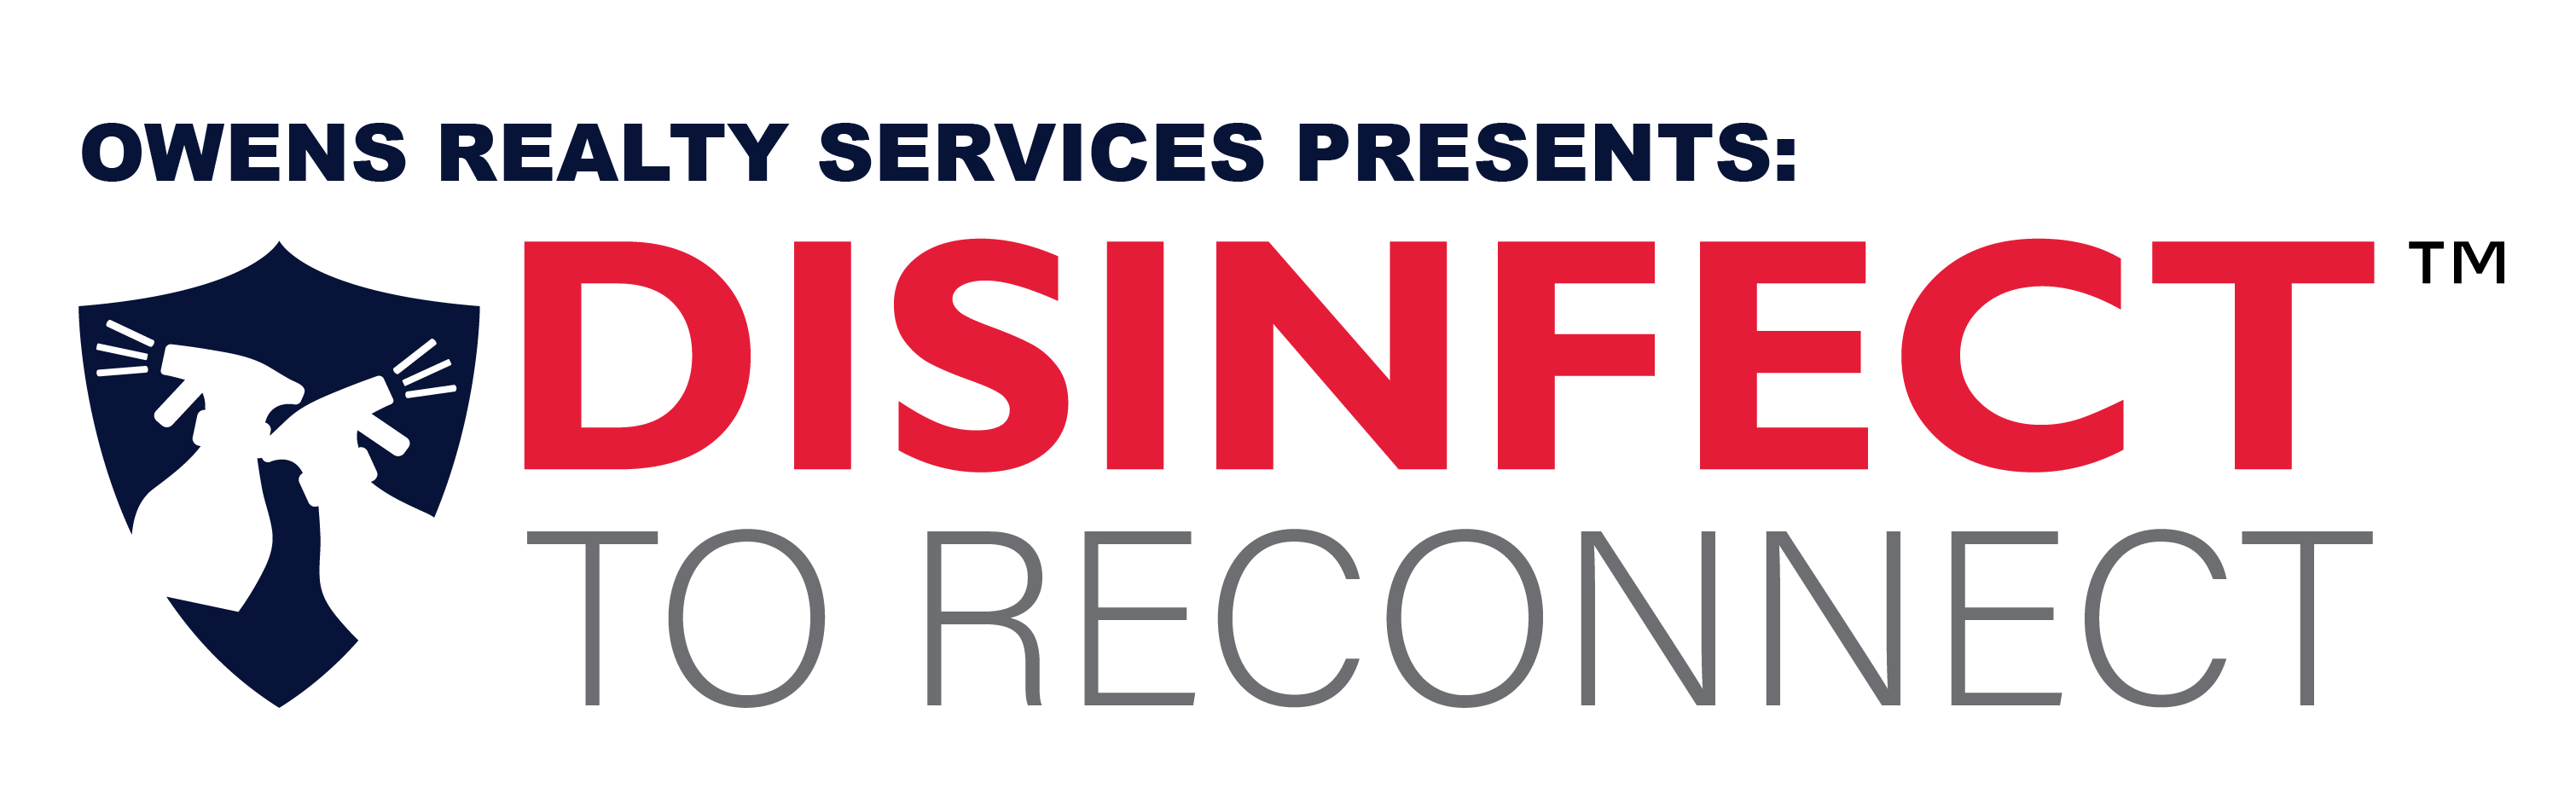 Disinfect to Reconnect Logo - For Review